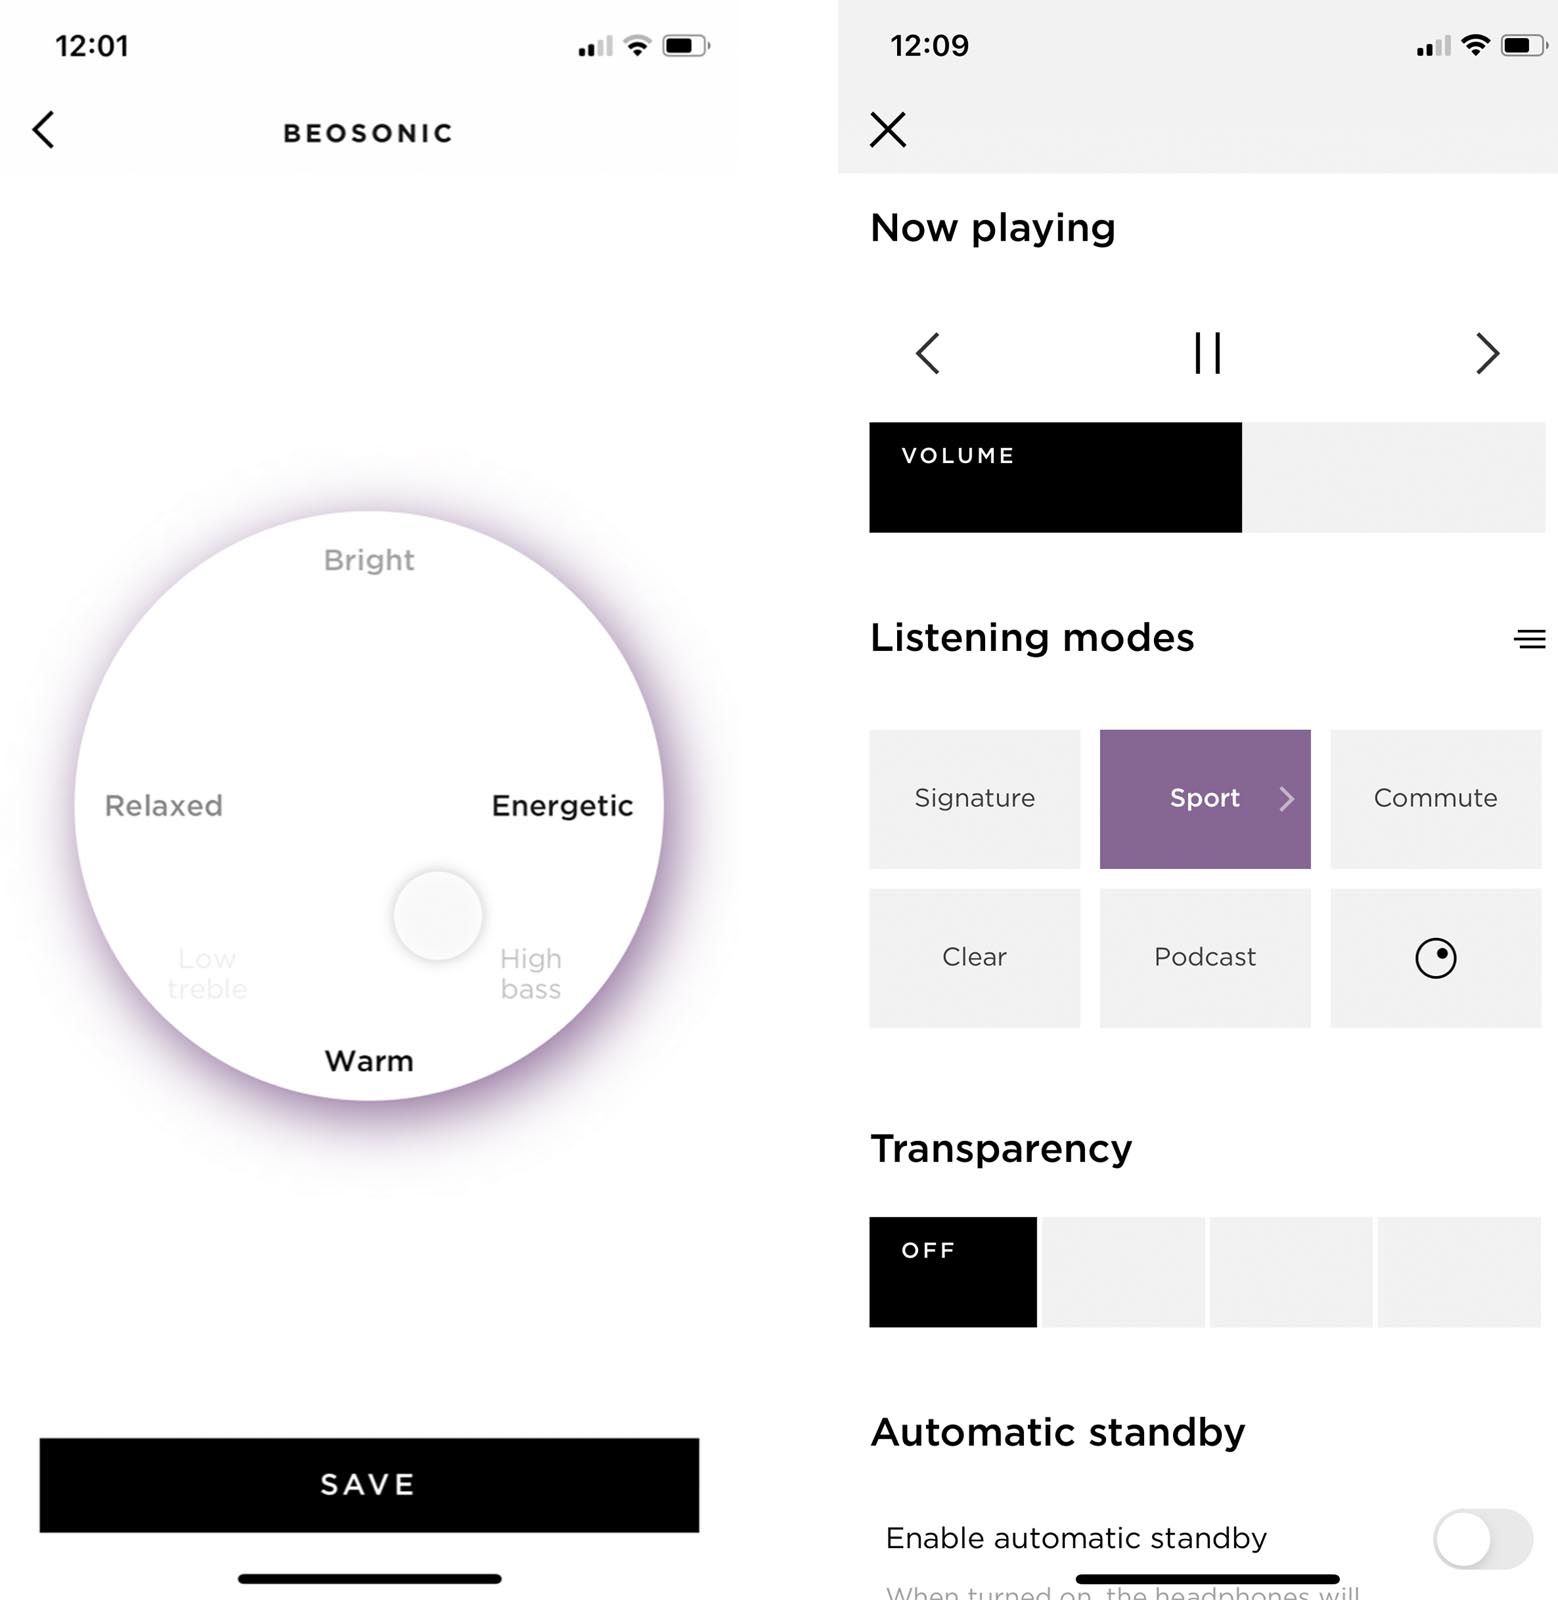 Rapha + Bang & Olufsen Limited Edition Beoplay E8 Sport earphones app